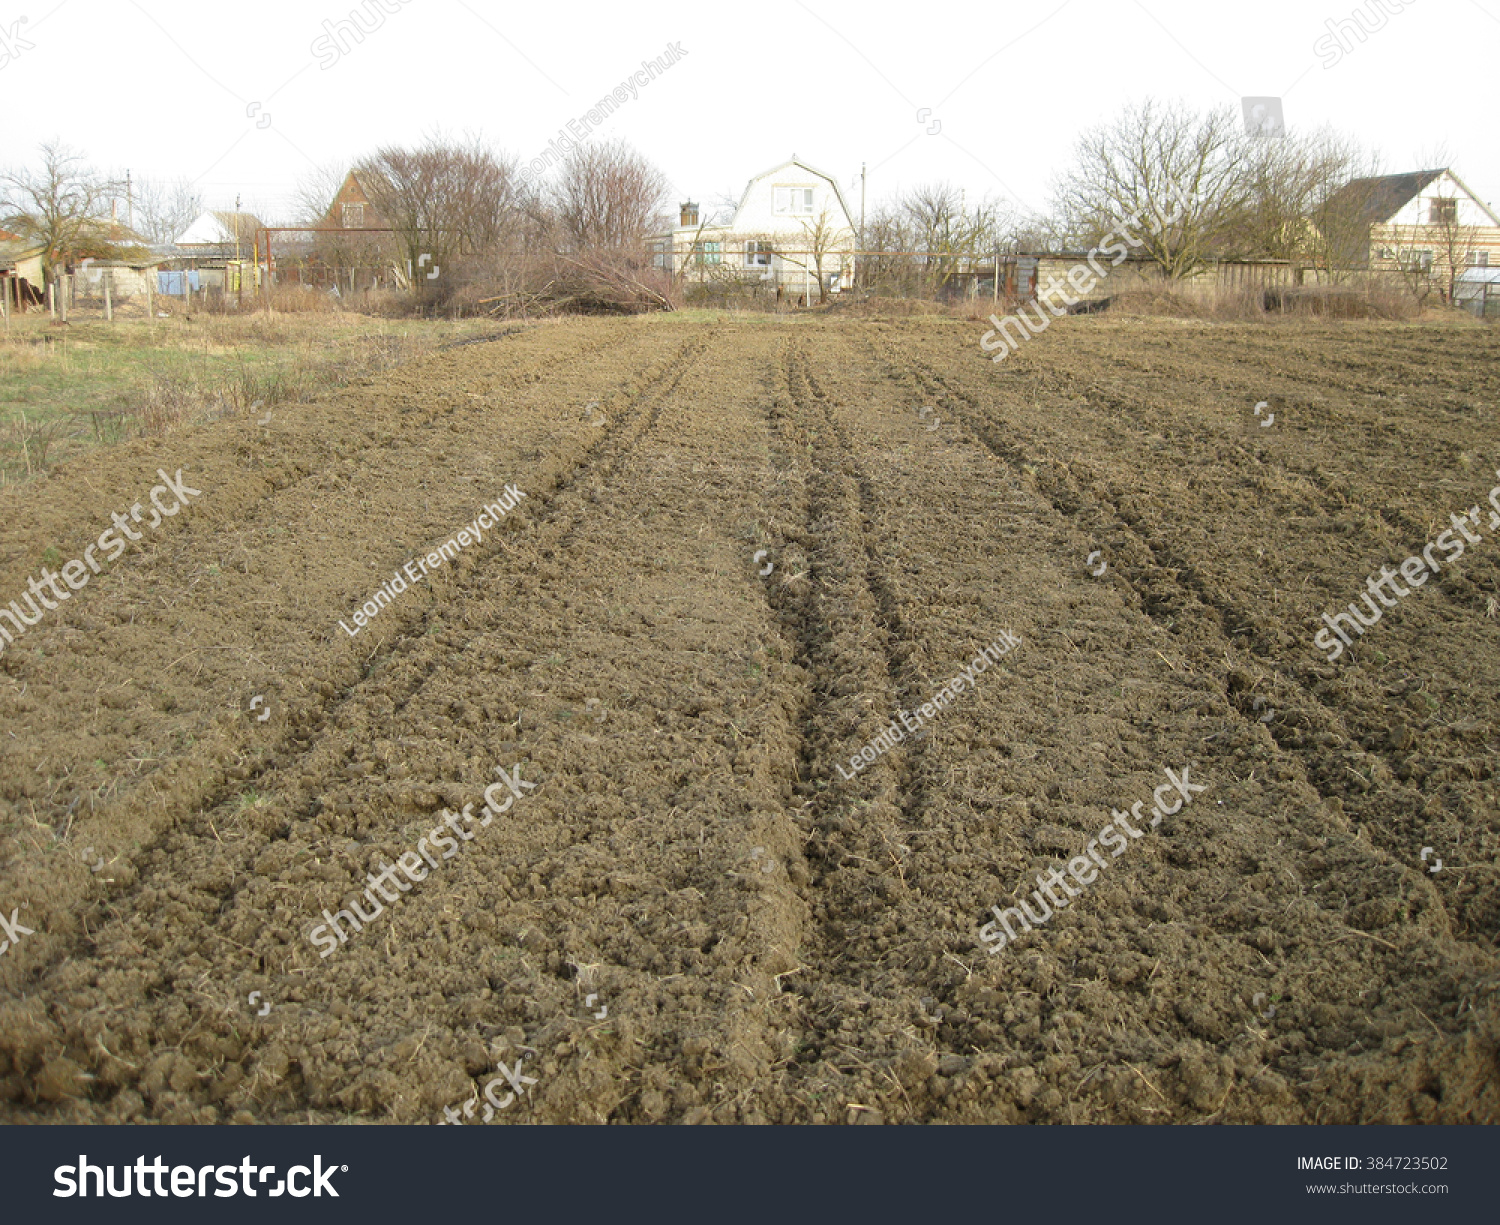 Disc Harrow Plow The Garden Private Infield Caring For The Soil